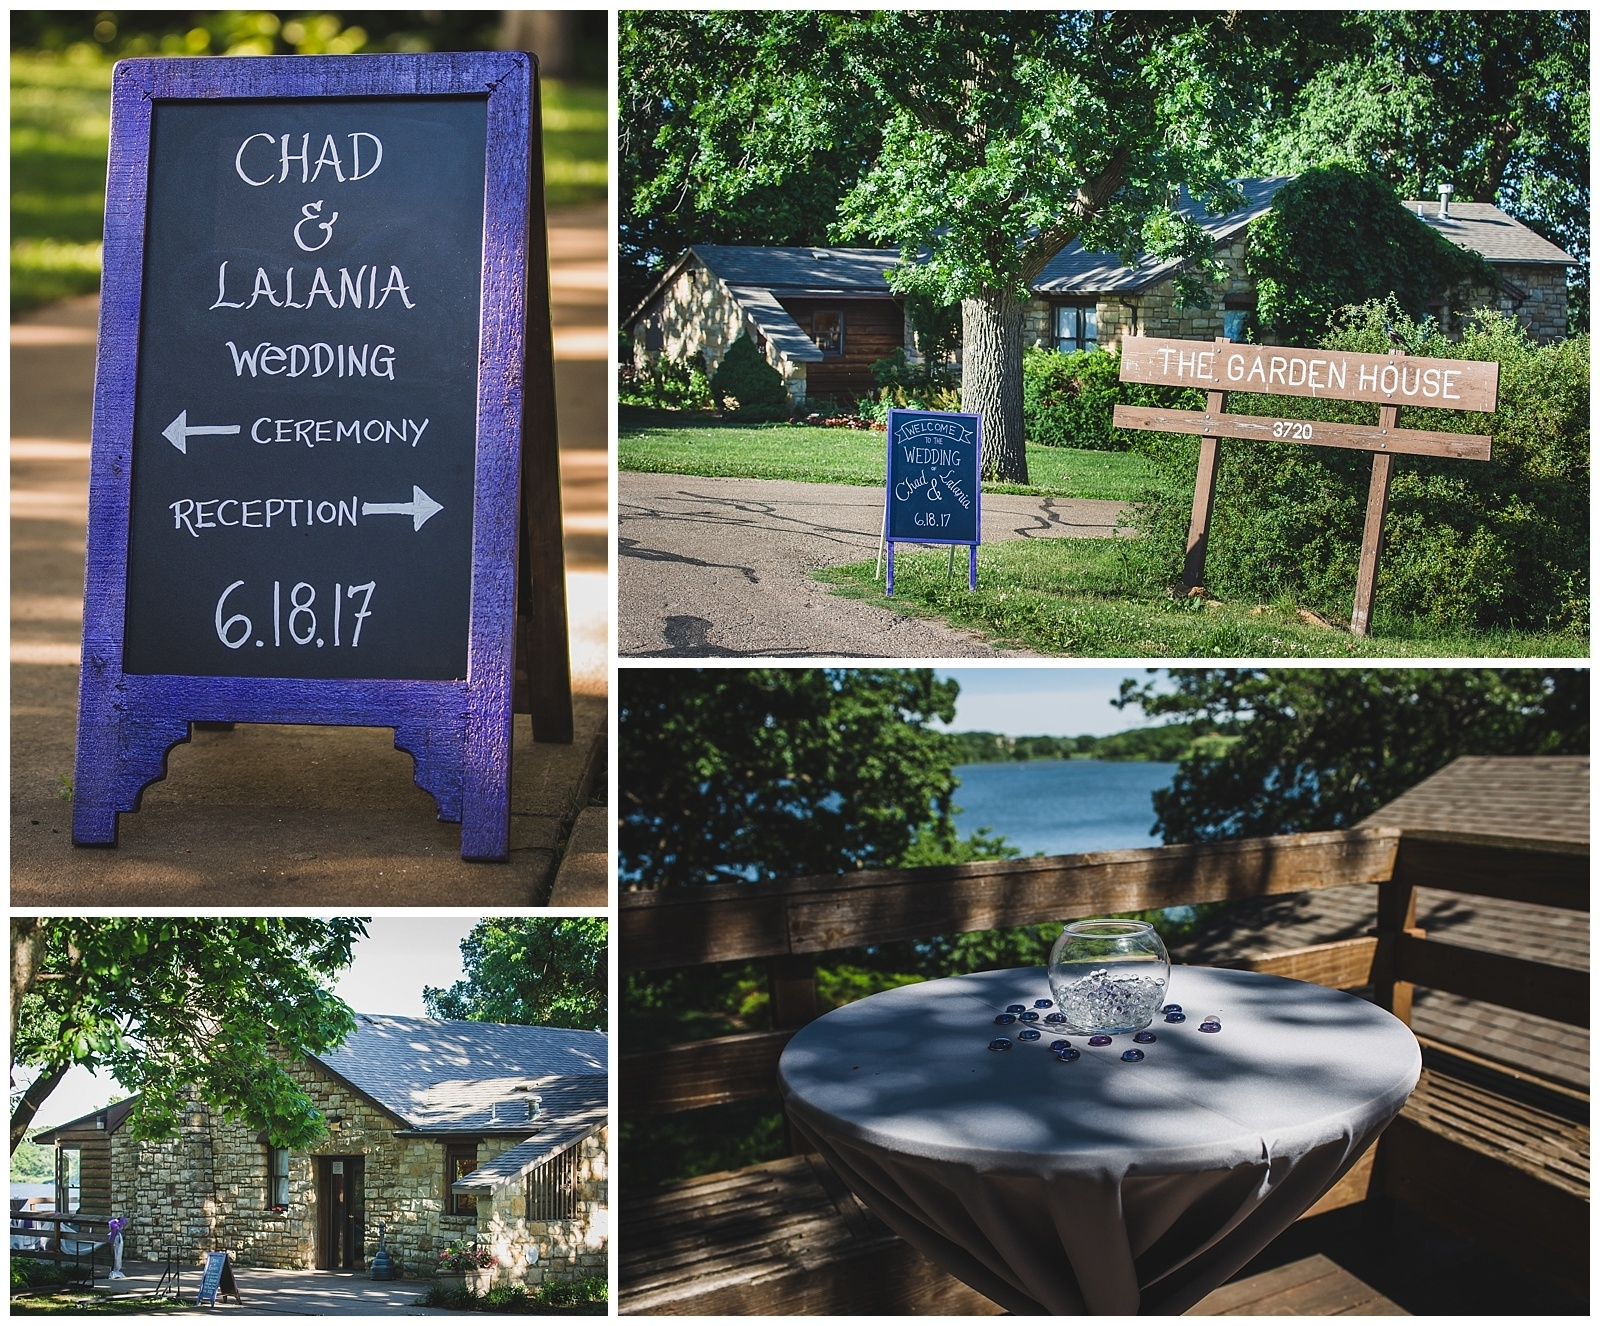 Lalania + Chad • A Lake Shawnee Wedding – Wisdom-Watson Weddings in Garden House Lake Shawnee Topeka Ks